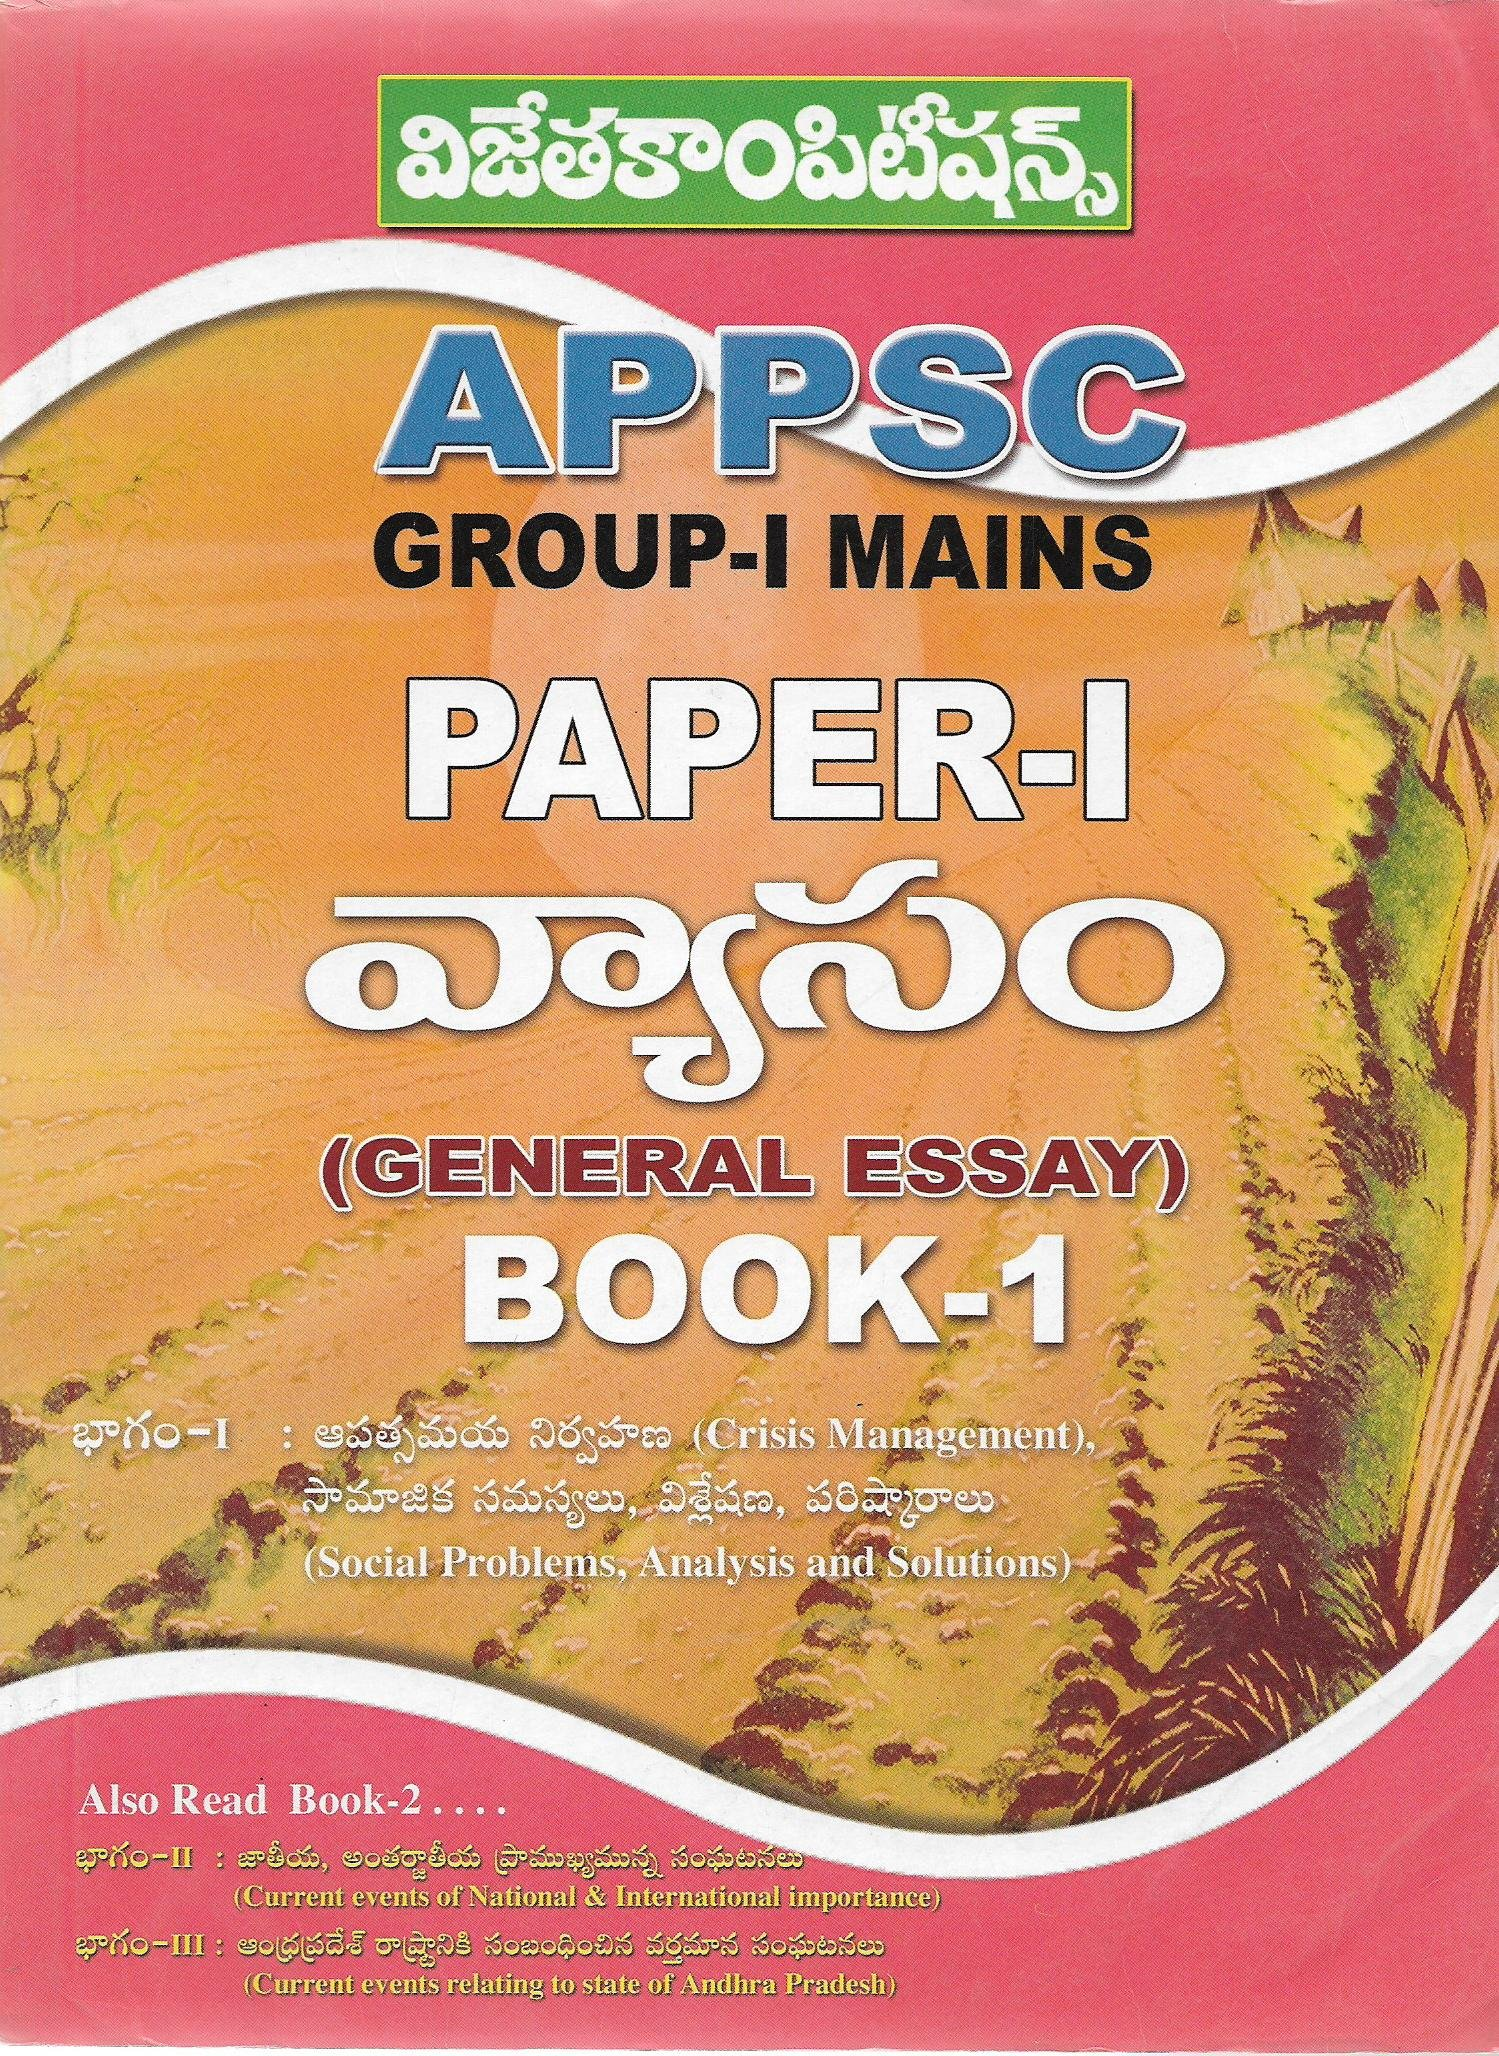 buy appsc group i mains paper general essays telugu medium buy appsc group i mains paper 1 general essays telugu medium book online at low prices in appsc group i mains paper 1 general essays telugu